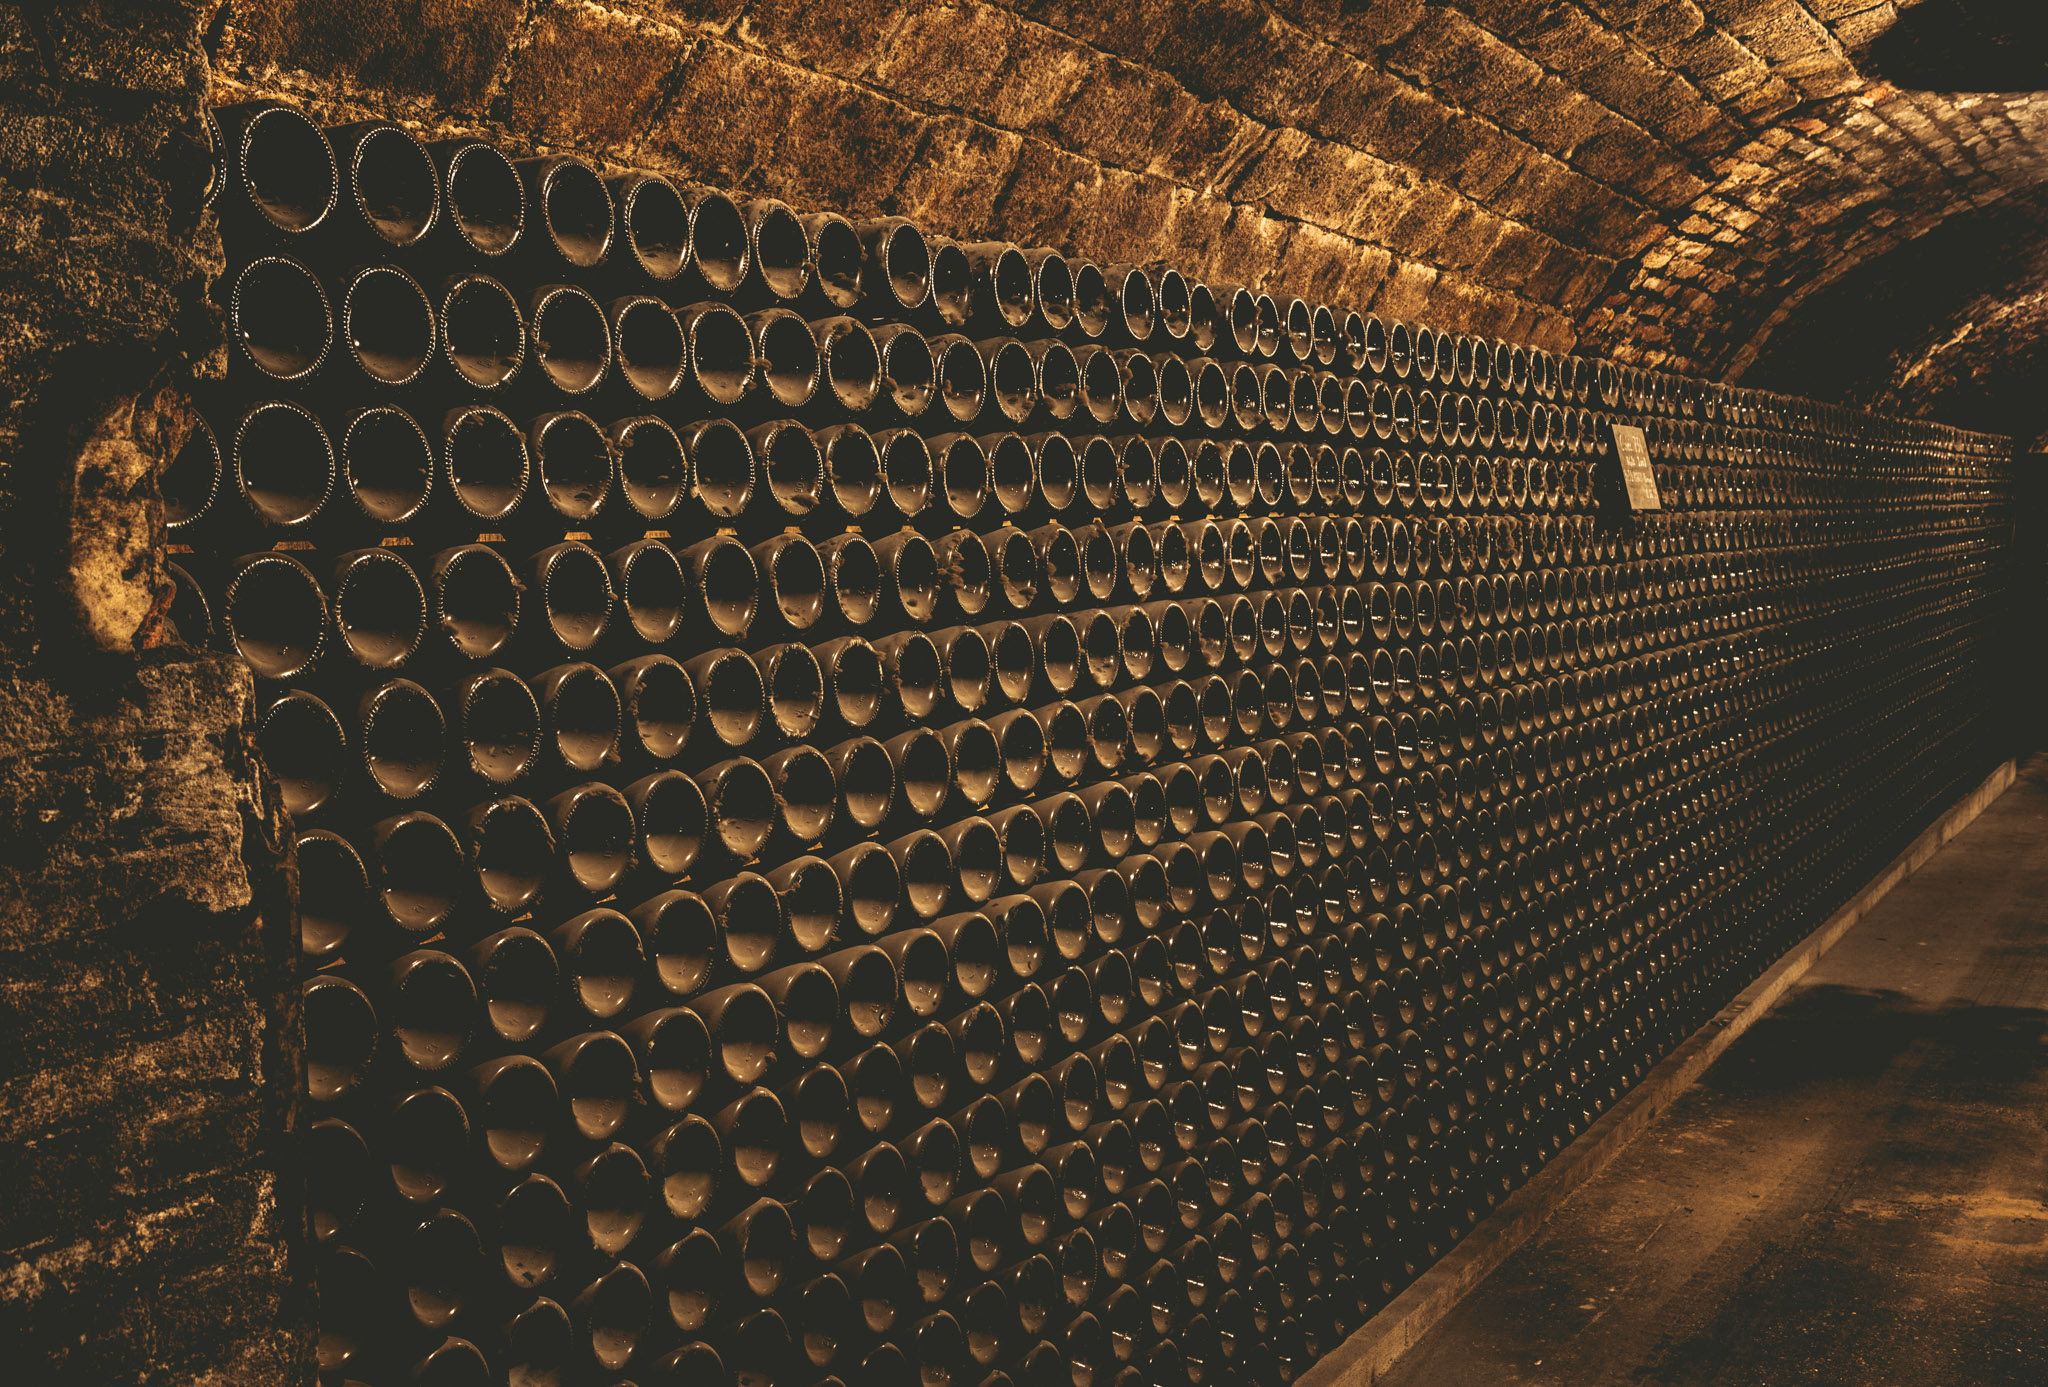 France : Champagne : In the cellar at Jacquesson